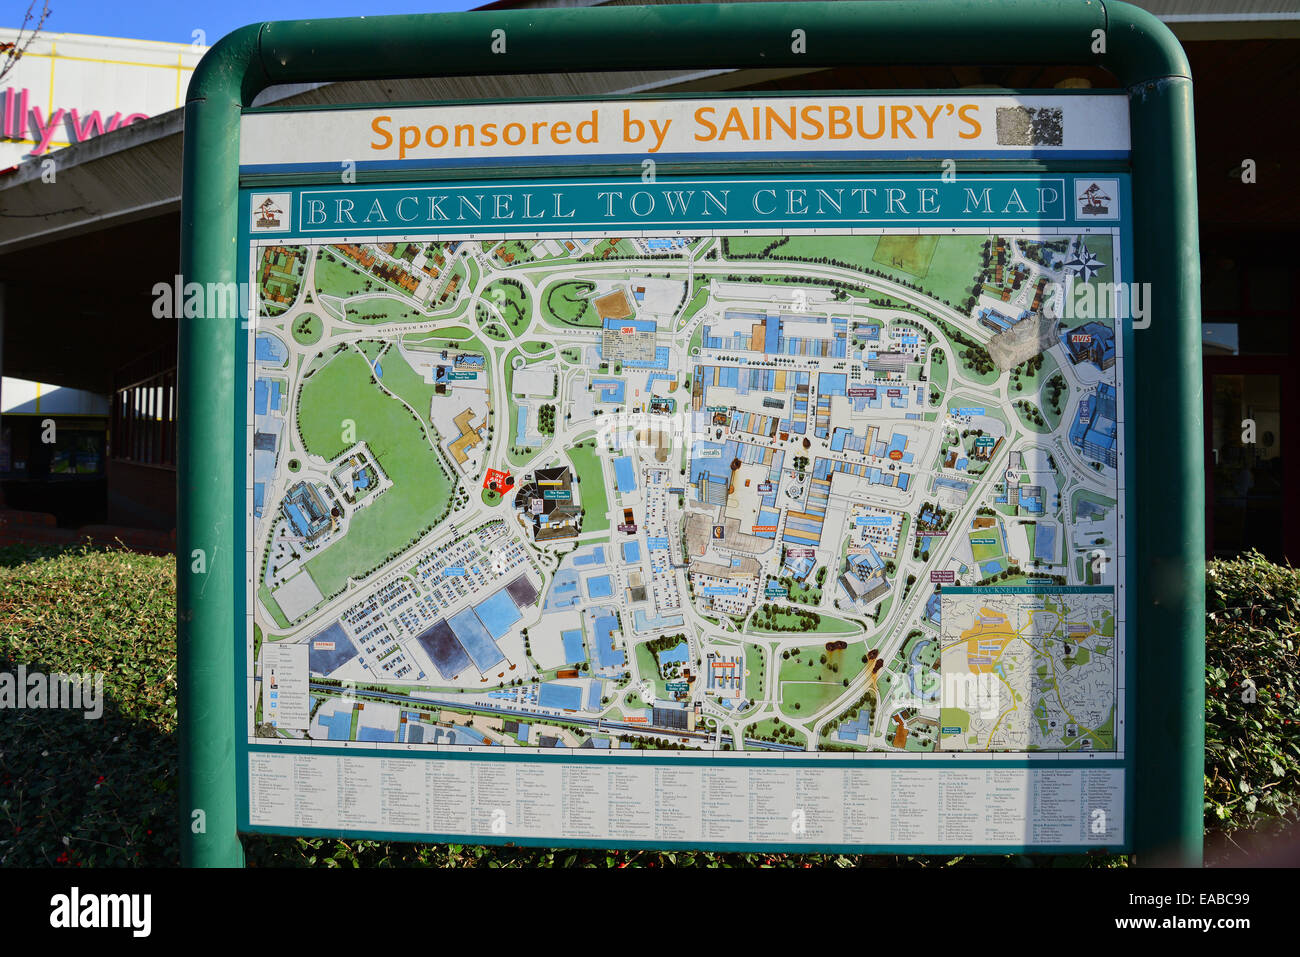 Bracknell town centre map Skimped Hill Lane Bracknell Berkshire